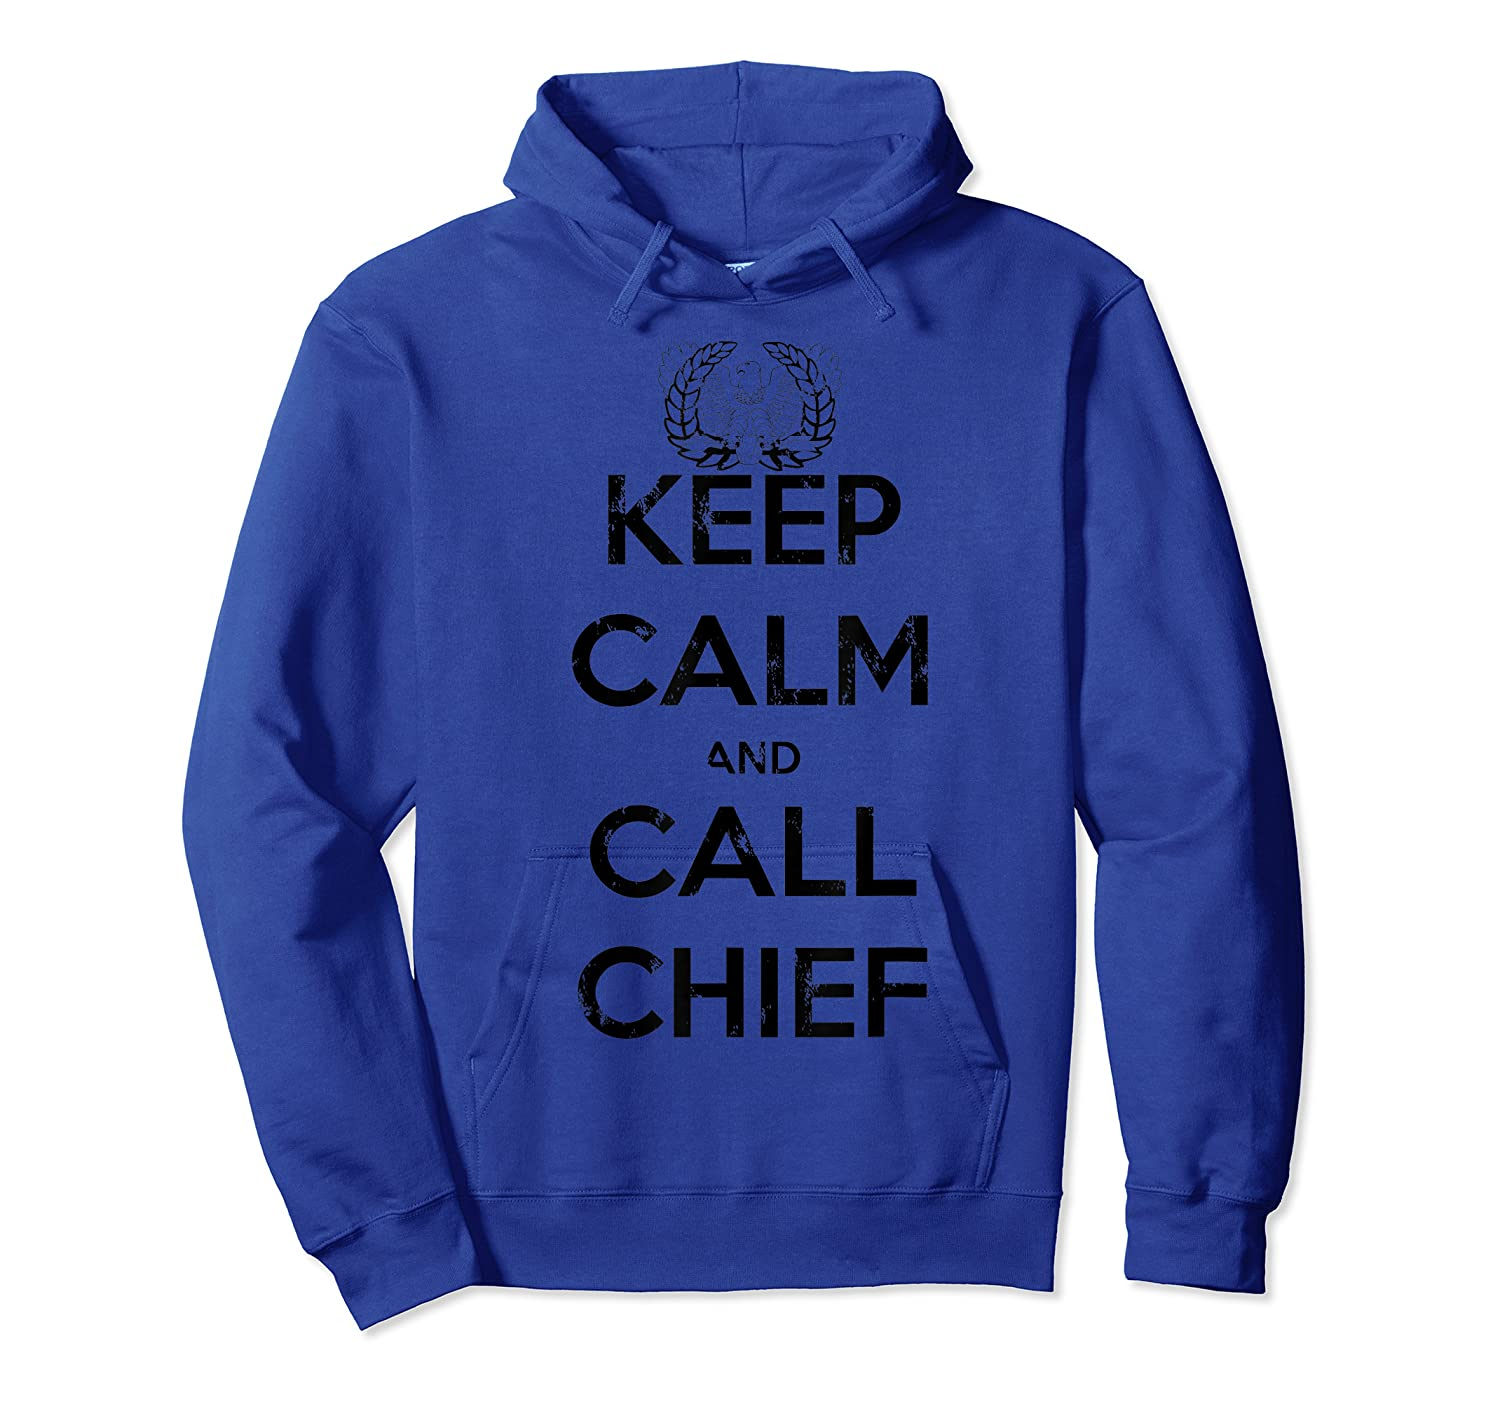 And Call Chief Warrant Officer Corps Eagle Rising Shirts Unisex Pullover Hoodie